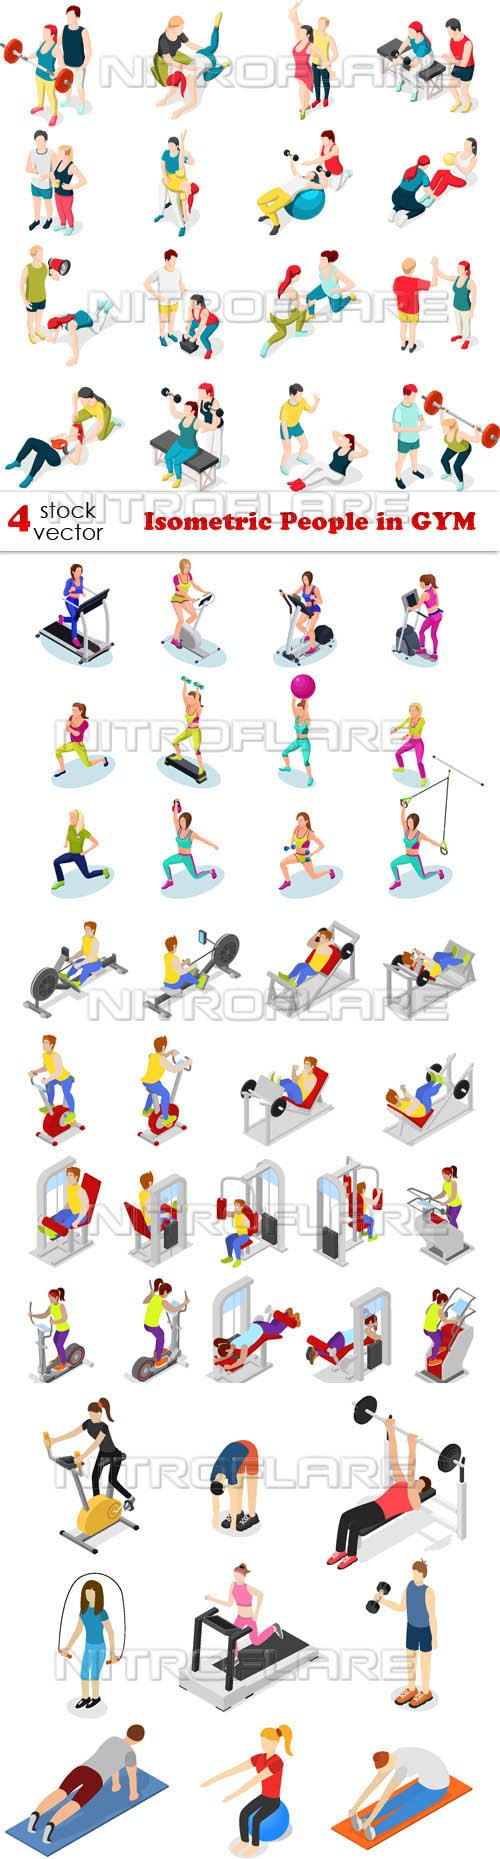 Vectors - Isometric People in GYM